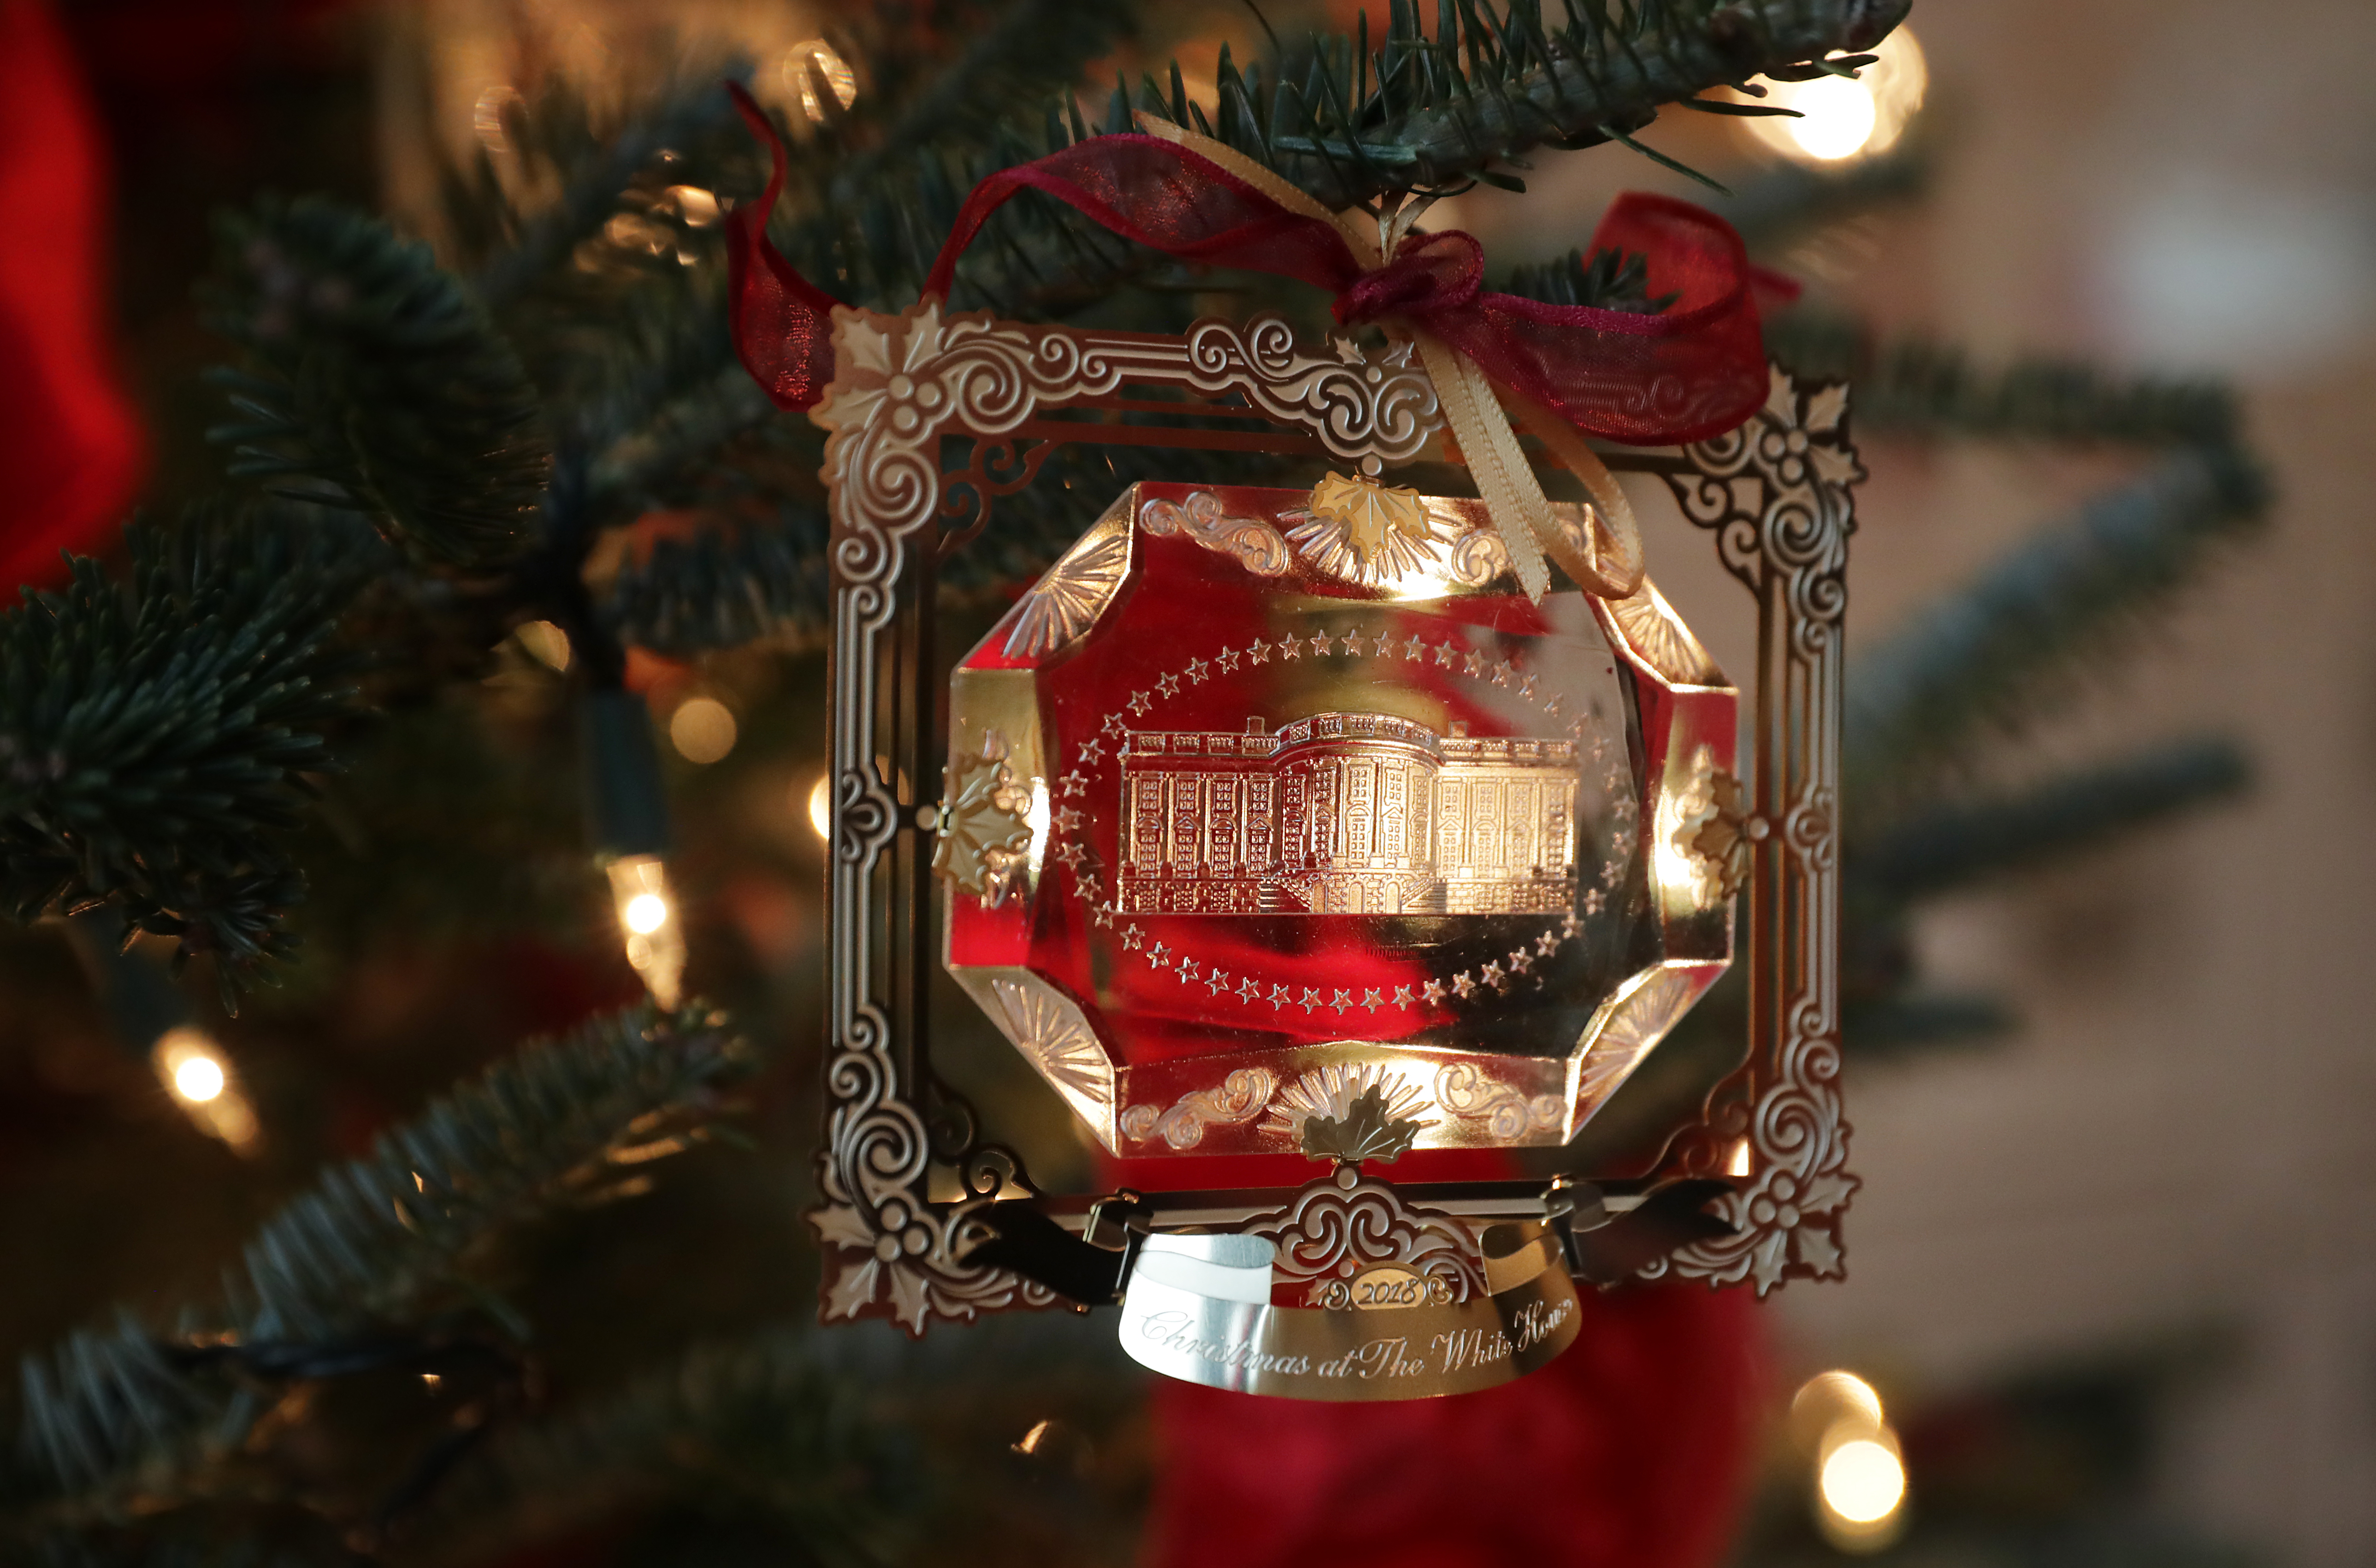 WASHINGTON, DC - NOVEMBER 26: The First Family's official Christmas ornament is displayed at the White House November 26, 2018 in Washington, DC. The 2018 theme of the White House holiday decorations is 'American Treasures,' and features patriotic displays highlighting the country's 'unique heritage.' The White House expects to host 100 open houses and more than 30,000 guests who will tour the topiary trees, architectural models of major U.S. cities, the Gold Star family tree and national monuments in gingerbread. (Photo by Chip Somodevilla/Getty Images)